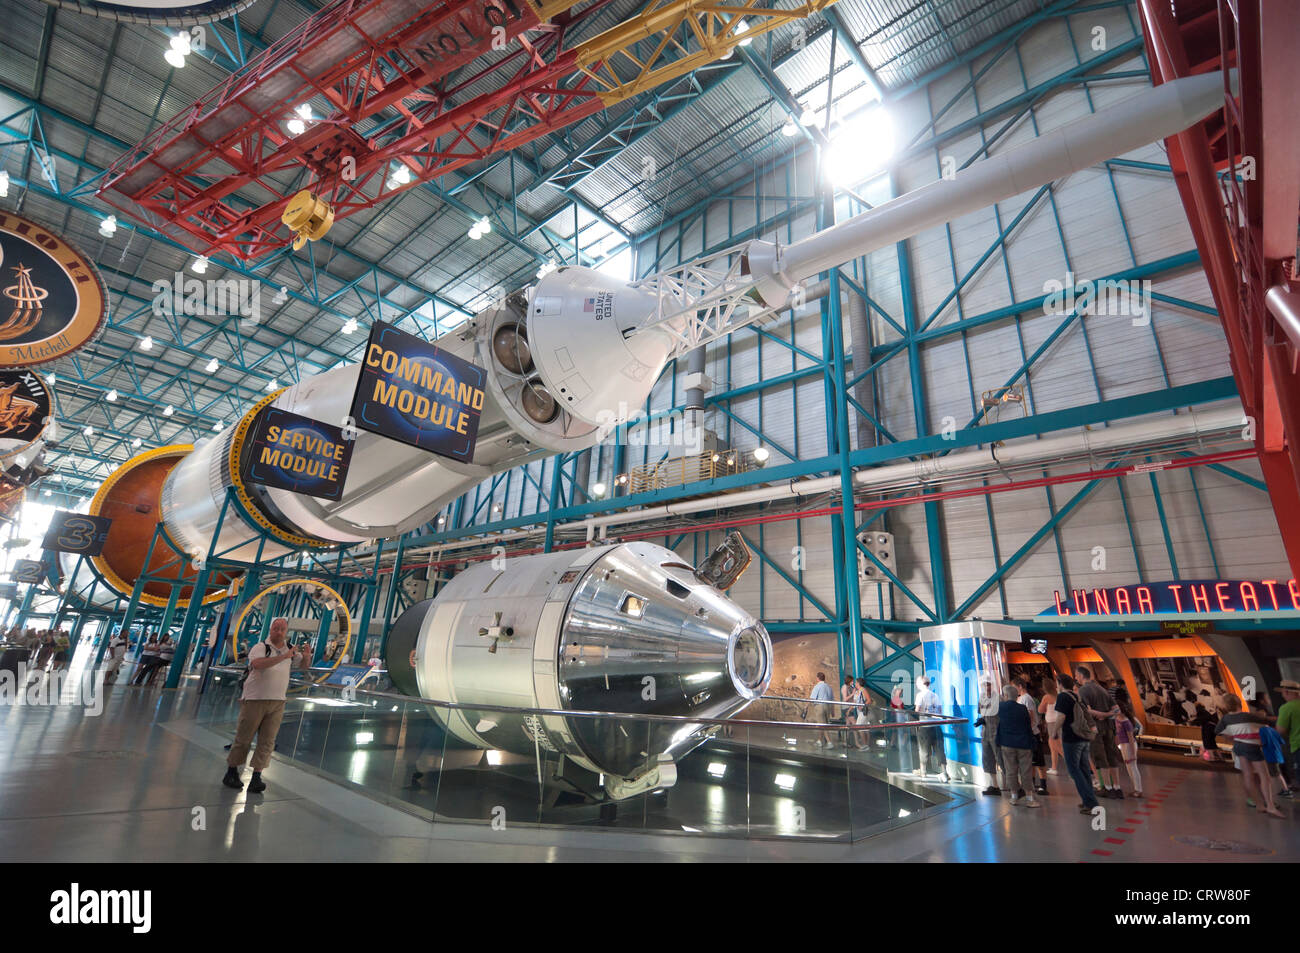 apollo 5 kennedy space center - photo #28